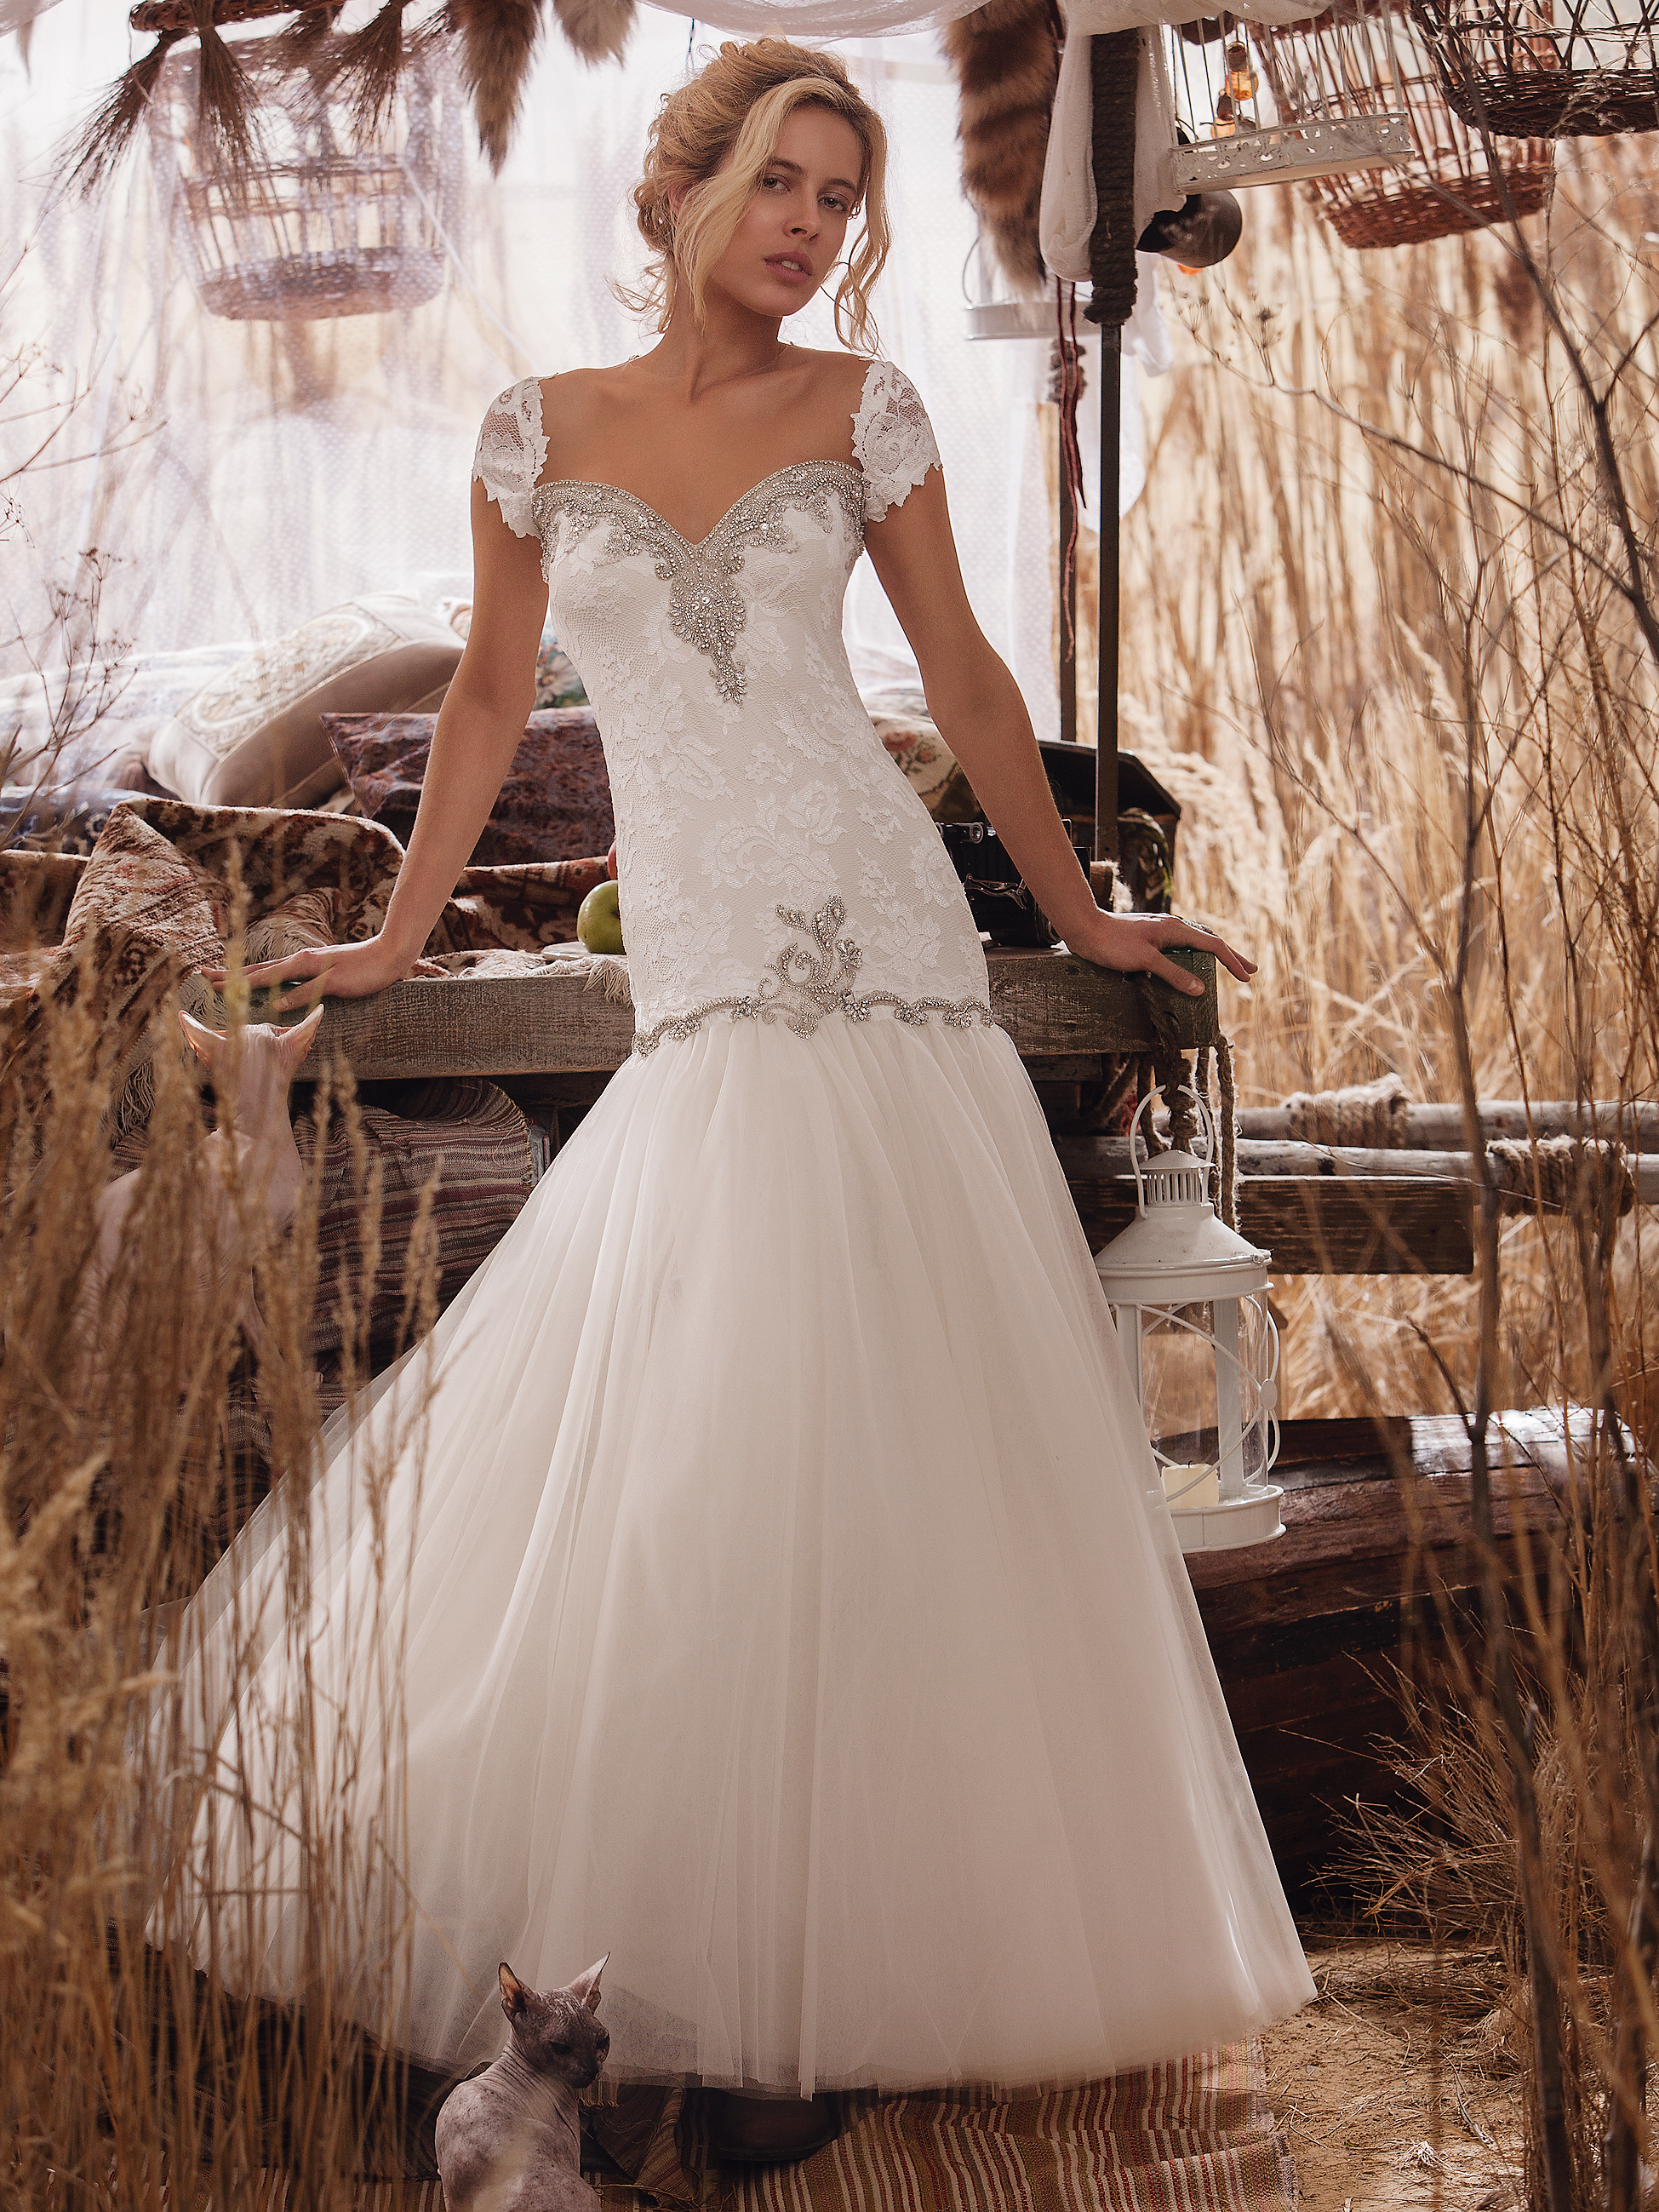 Wedding Gowns From Olvi's - Rustic Wedding Chic - photo#17